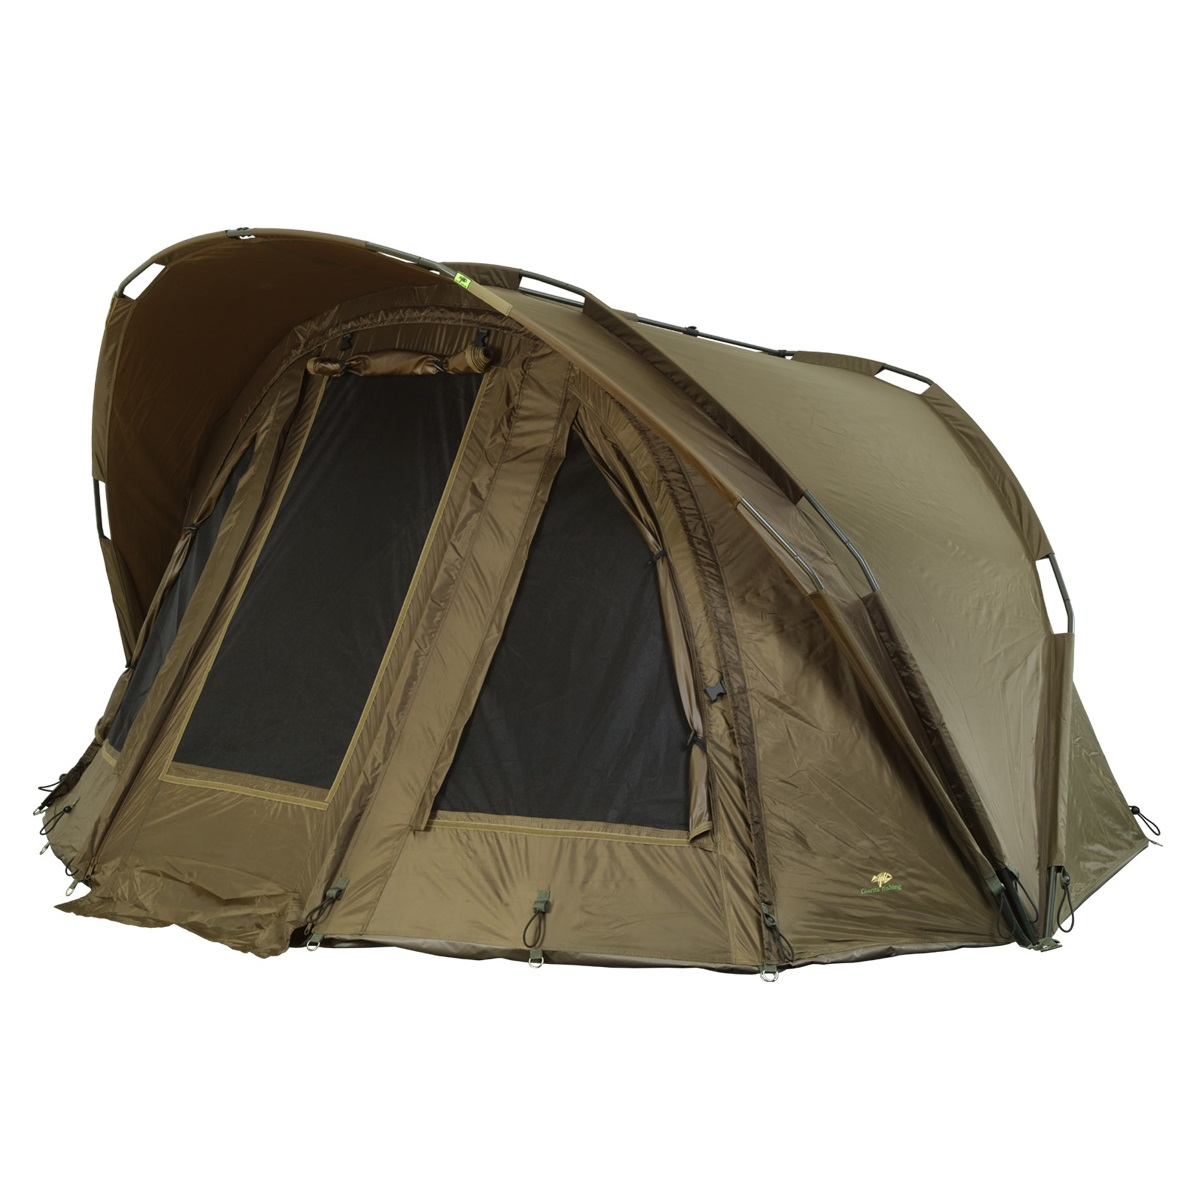 GIANTS FISHING- Bivak Gaube Bivvy 2 Man